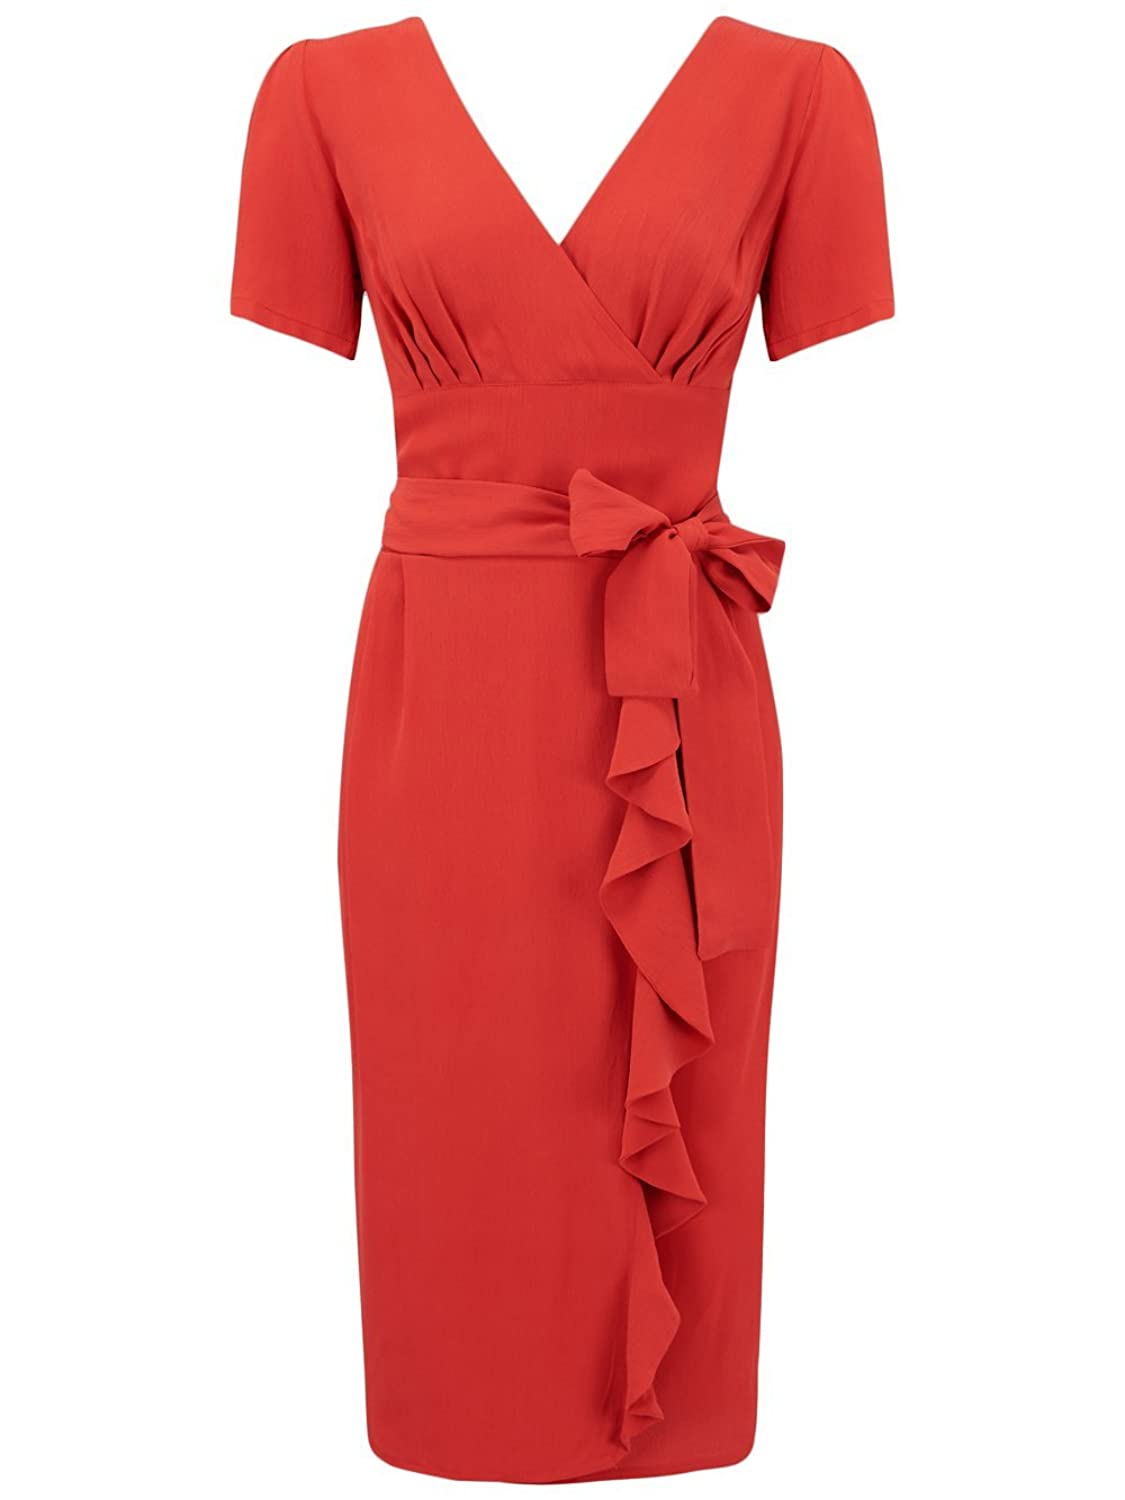 1940's Authentic Vintage Inspired 'Lilian' Dress in Red